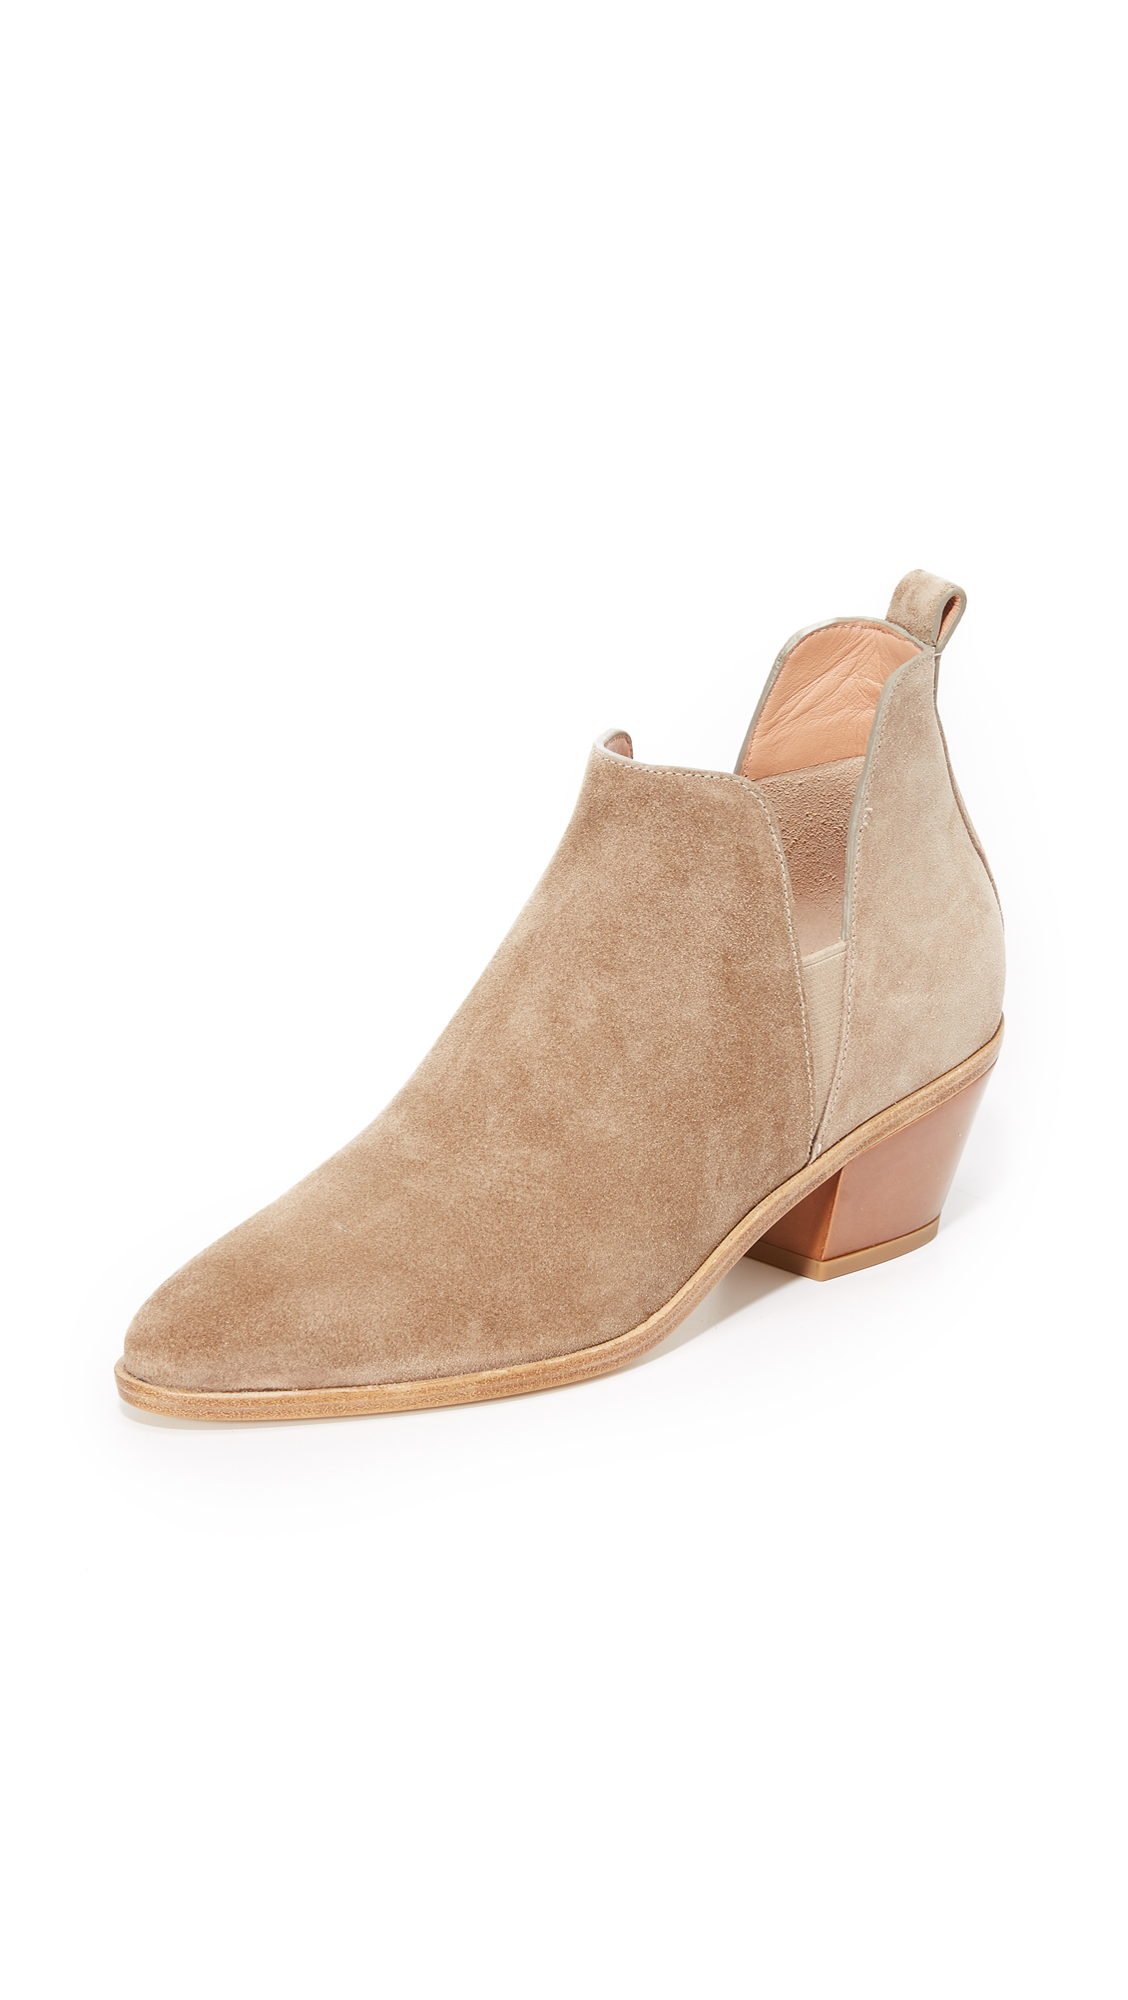 Sigerson Morrison Belin Booties - Cloud